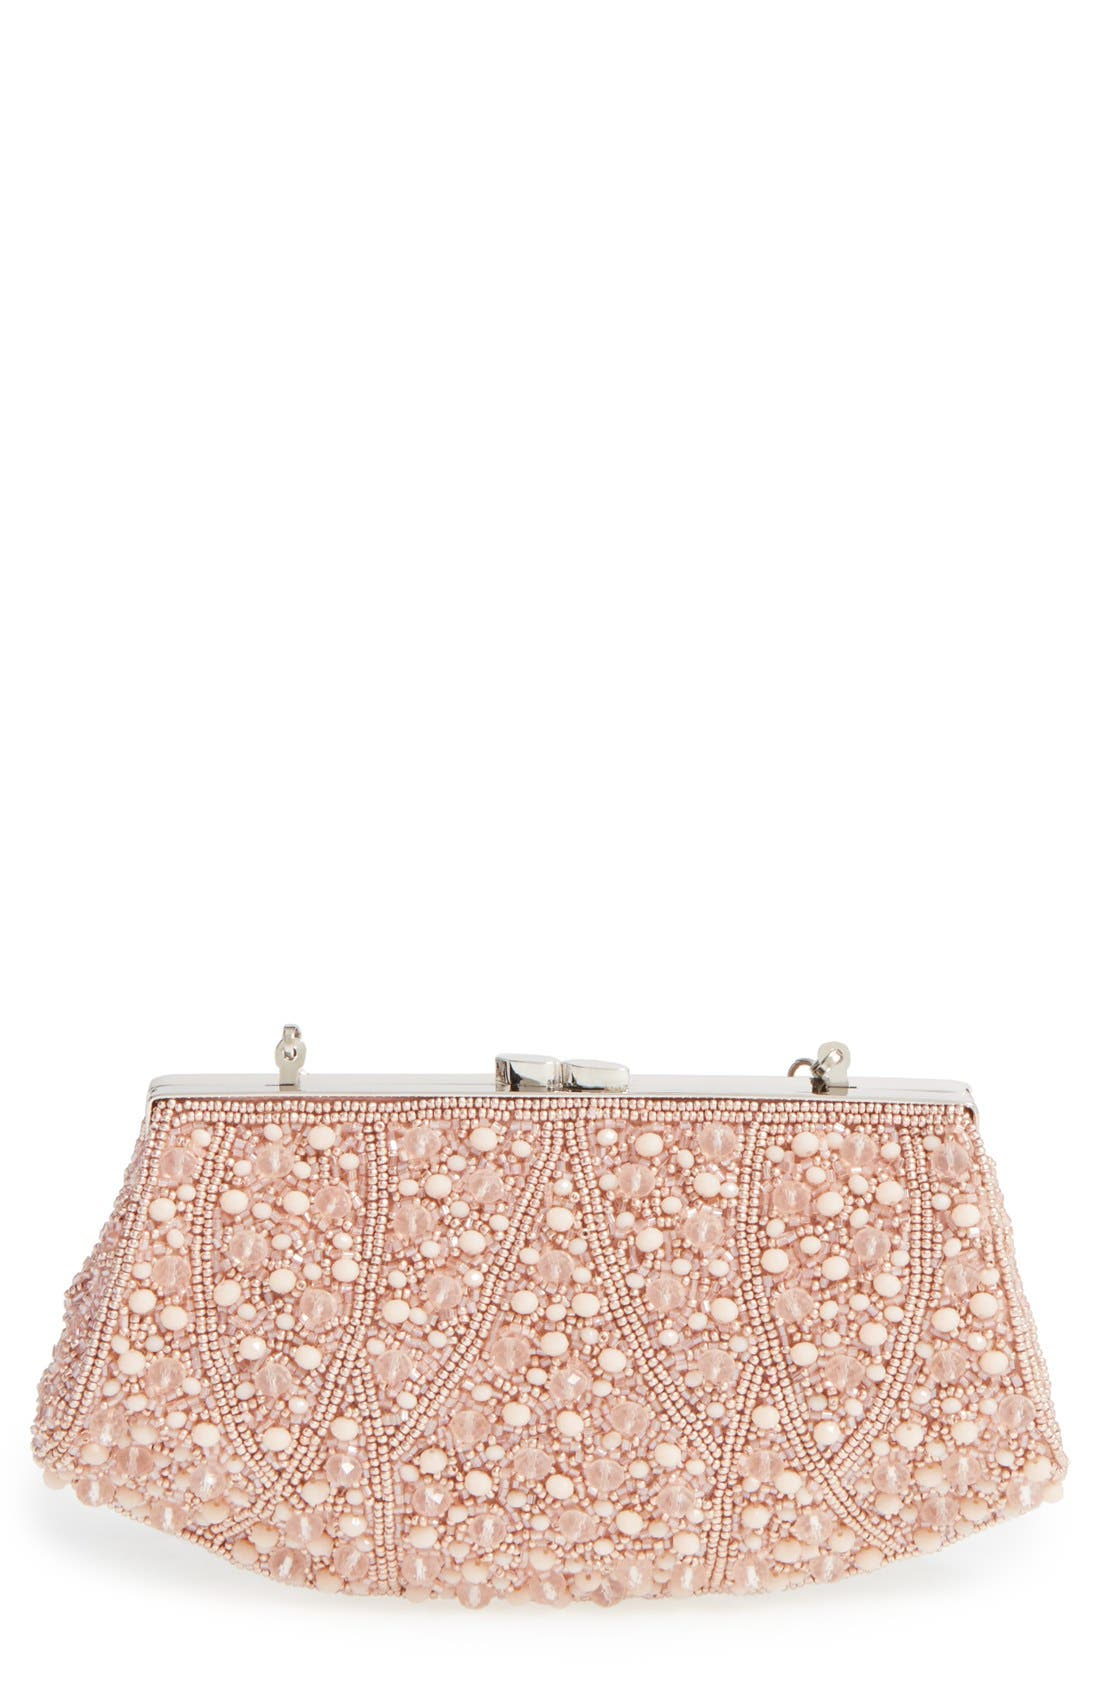 Alternate Image 1 Selected - Glint 'Rivoli' Beaded Clutch